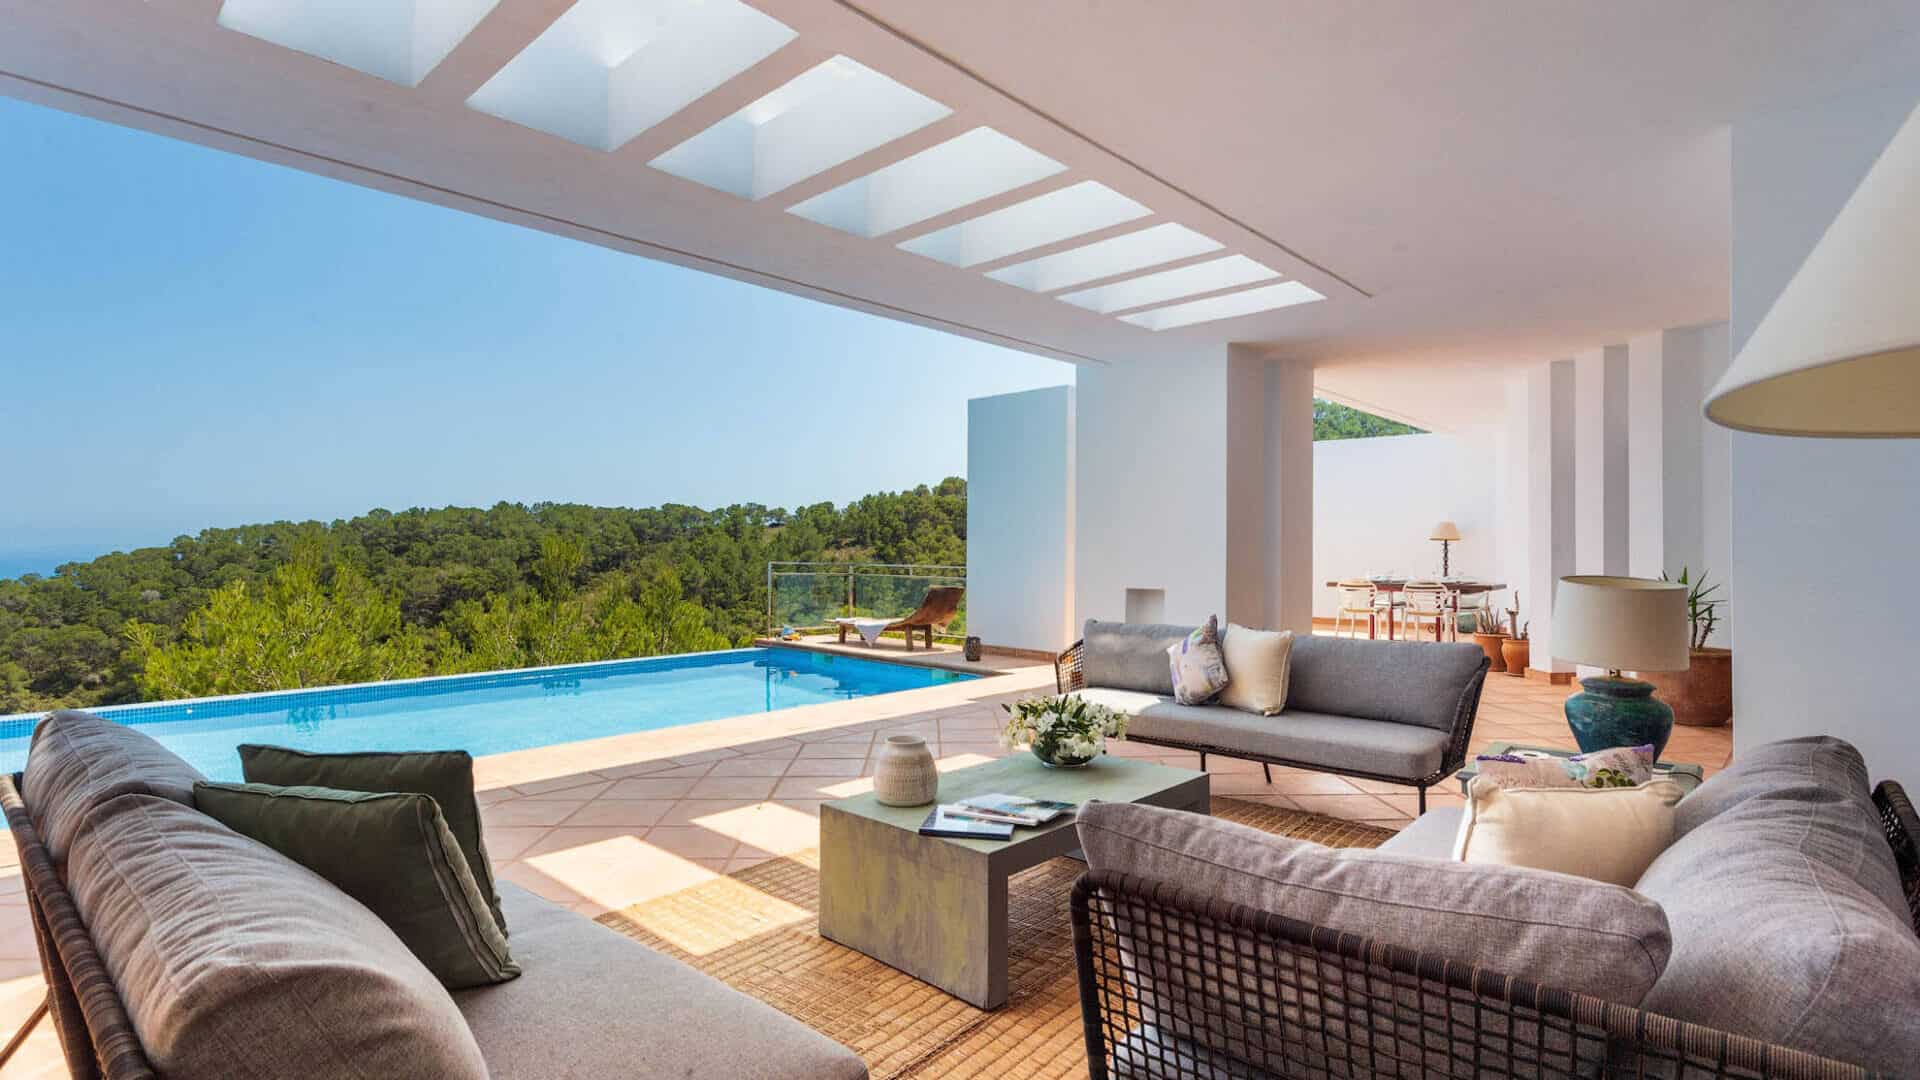 Hill top villa with pool and and amazing sea views on the South Coast – Long term rental.